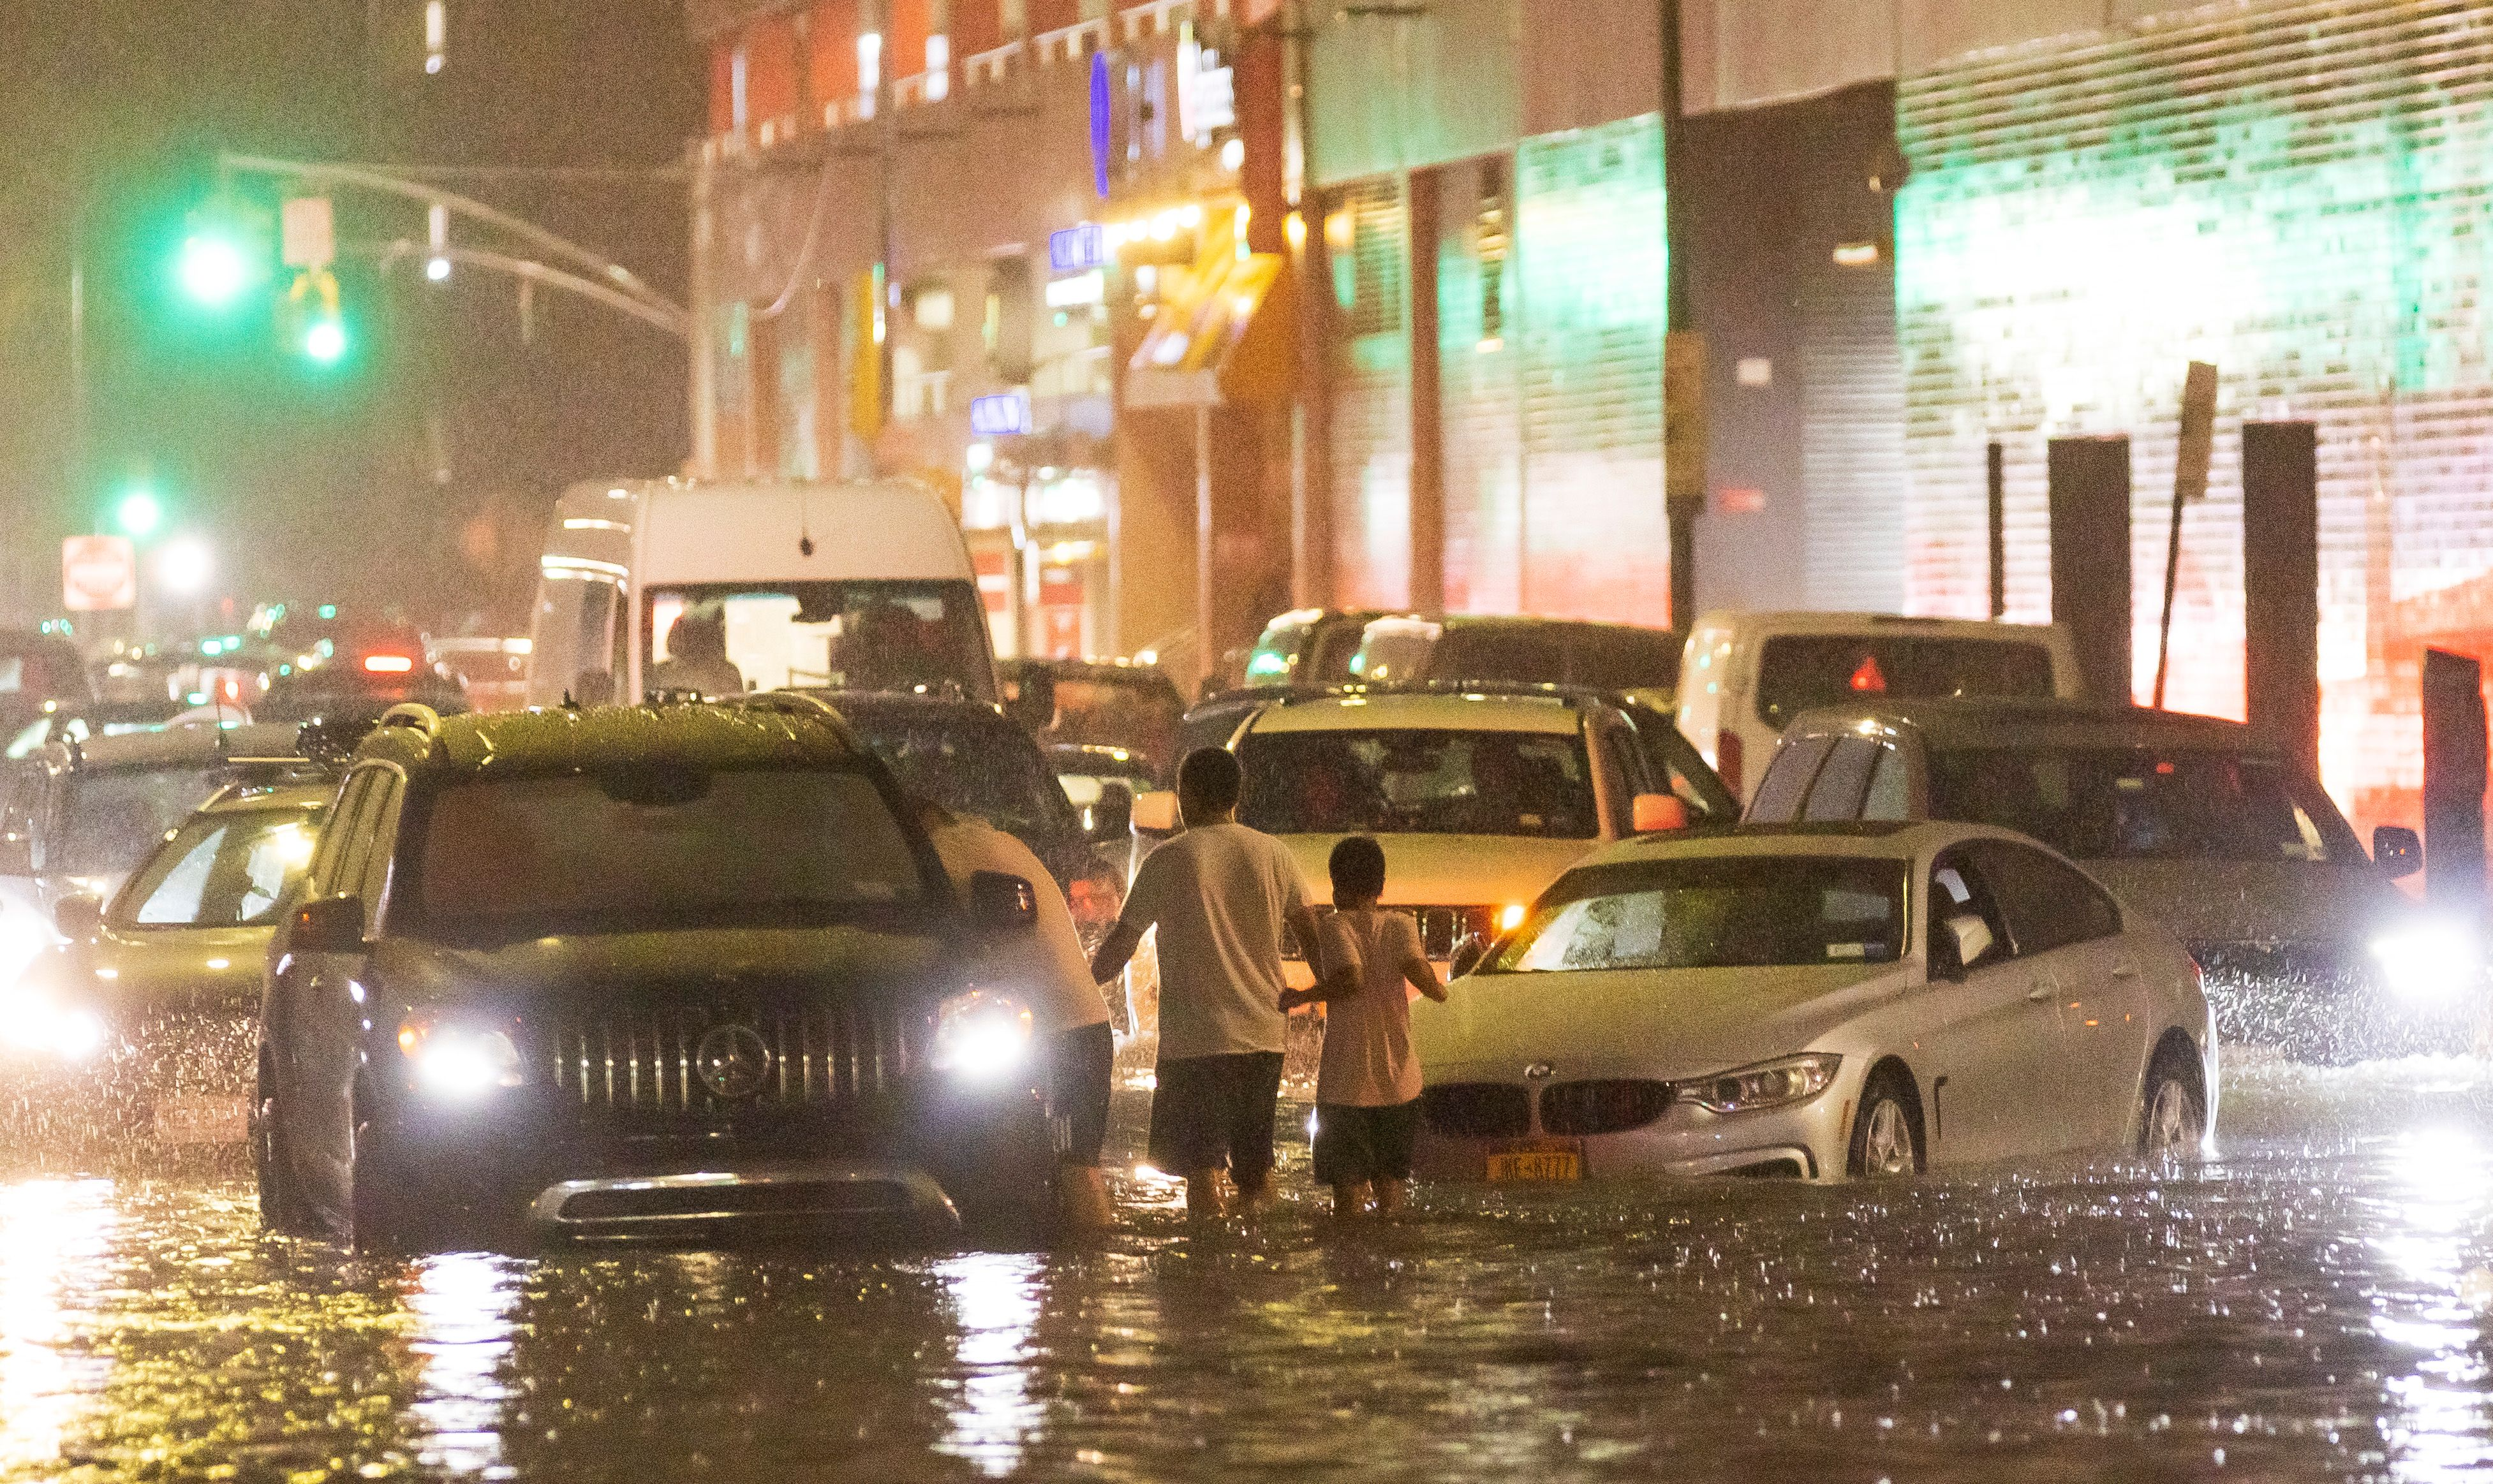 Vehicles stopped in flooded streets, an adult and a child stood in the middle of the street